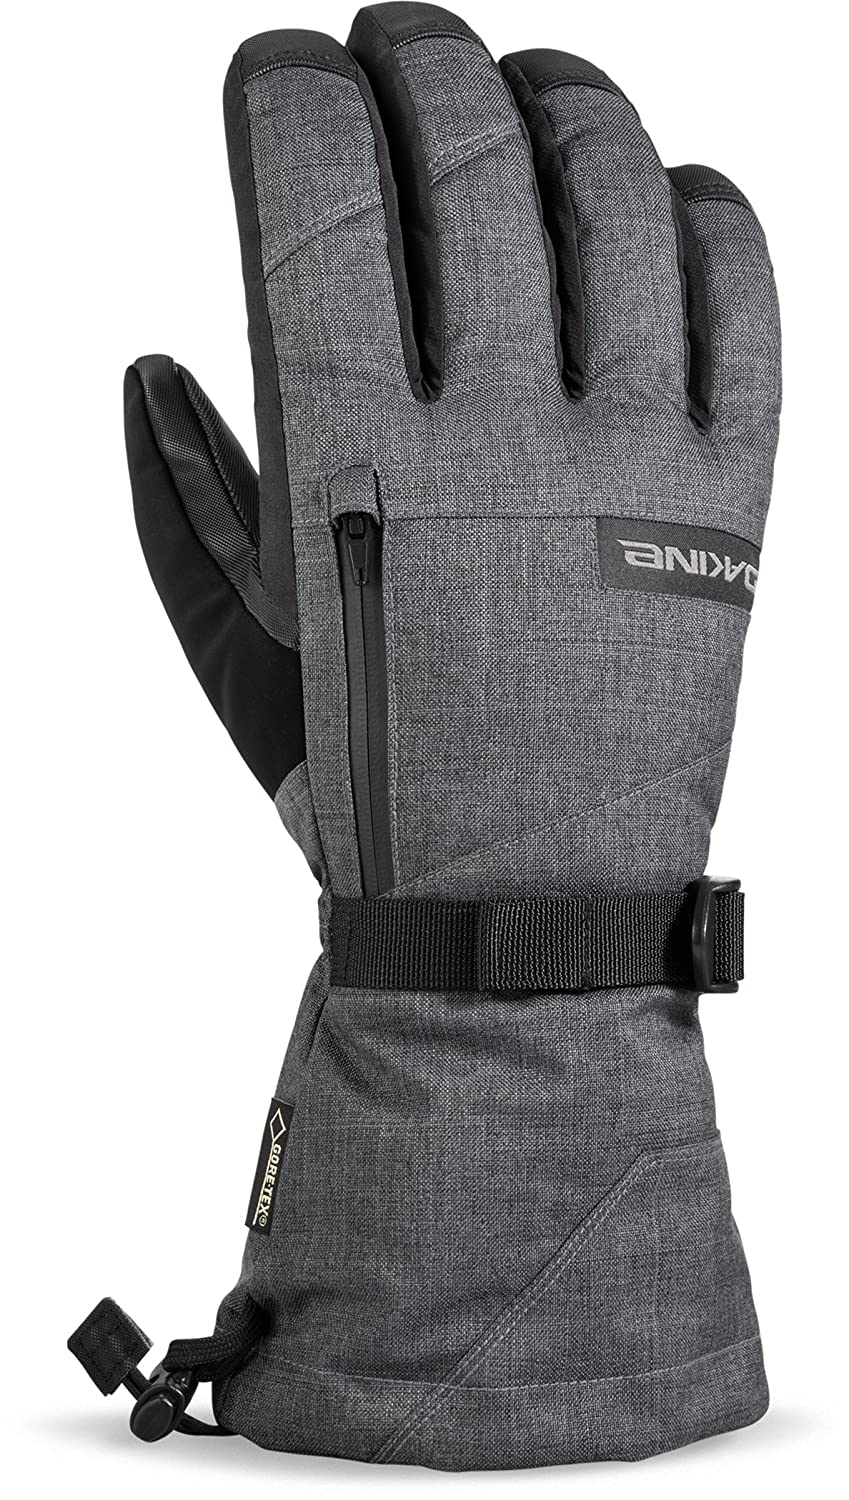 Dakine Men's Titan Gloves B0148KZAE8